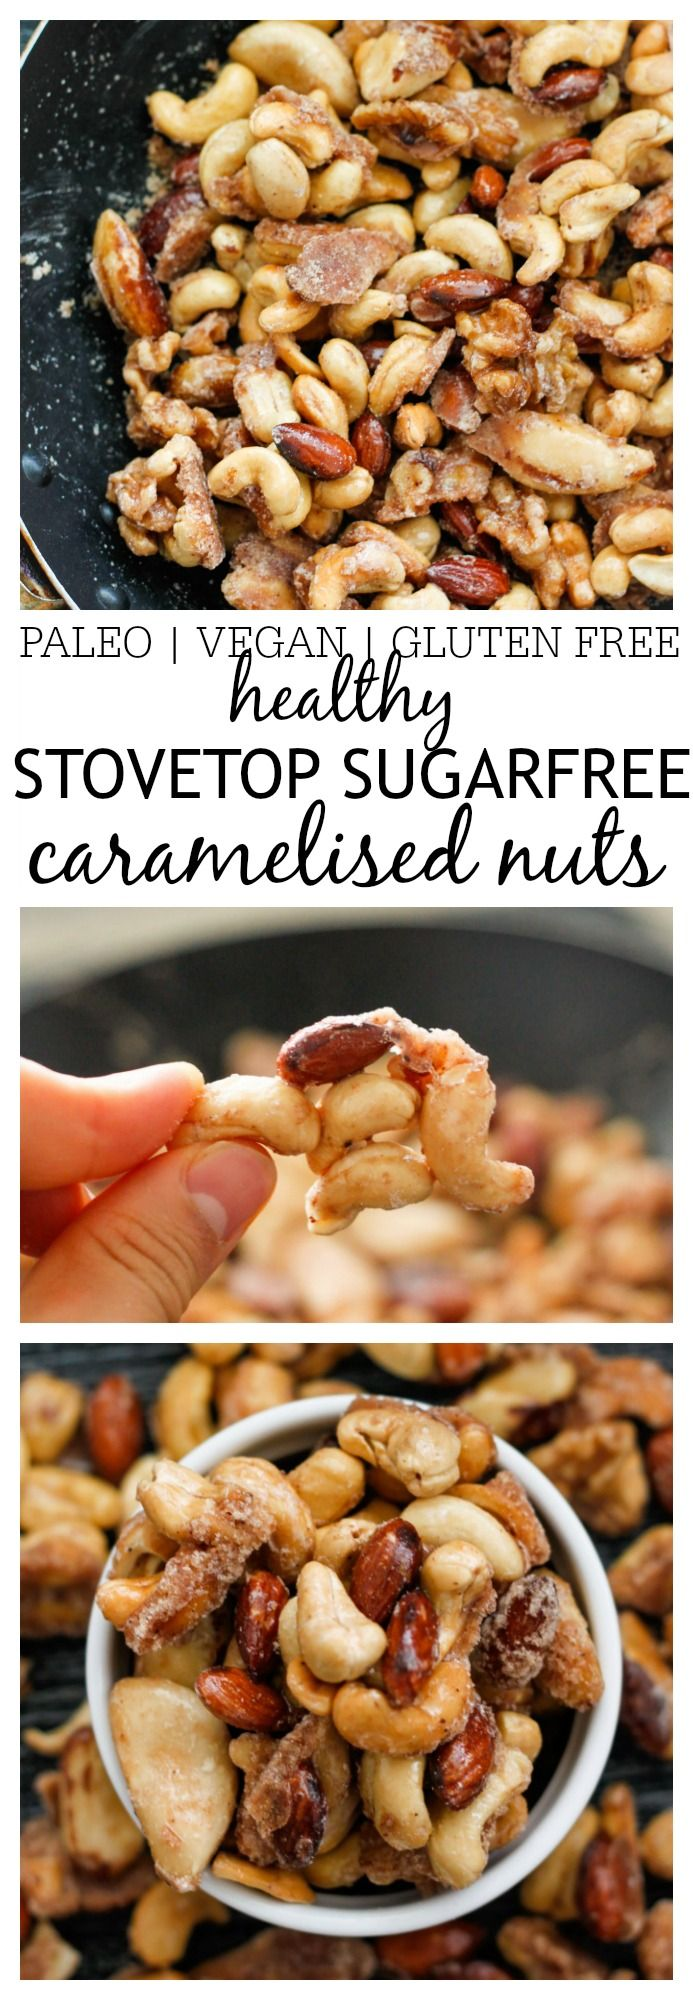 Sugar Free Stovetop Caramelised Nuts- Made stovetop and take 10 minutes! This is PERFECT for gifting, snacking and the festive/Christmas season- A perfect DIY! {vegan, gluten free, paleo}- thebigmansworld.com